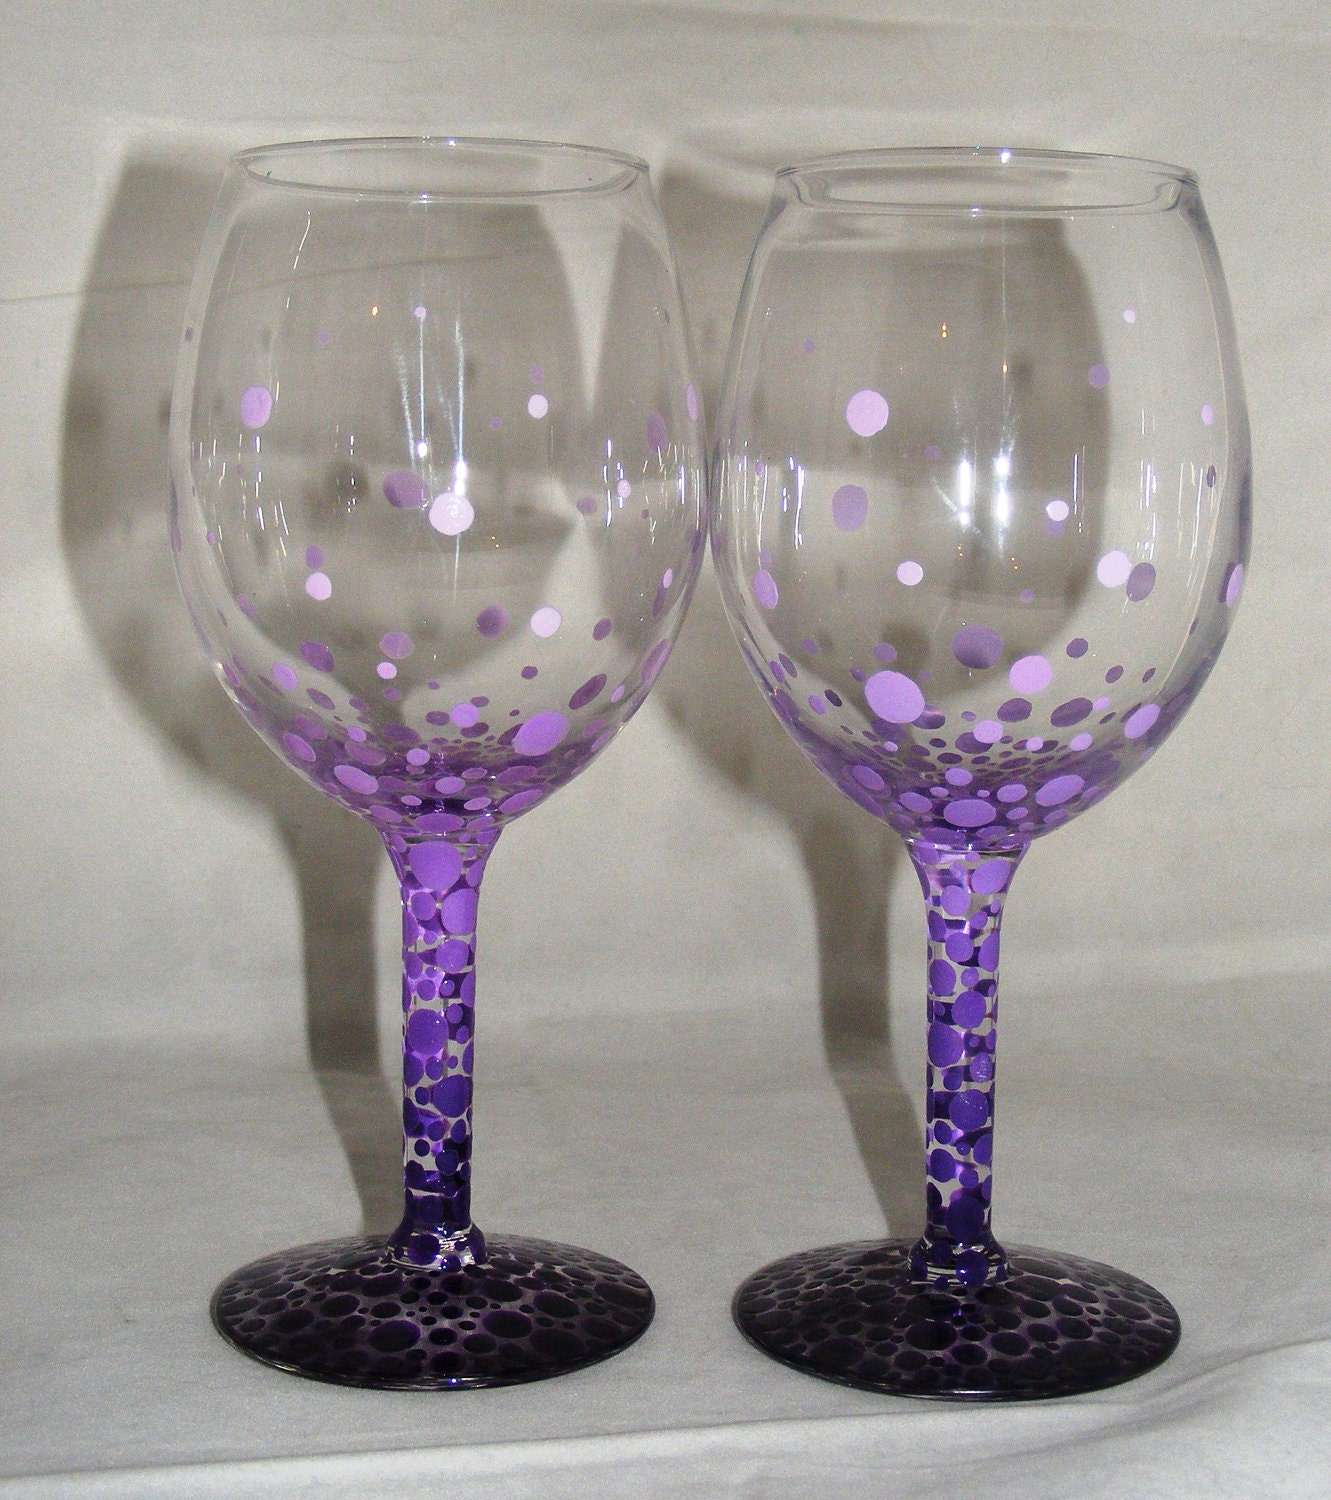 Hand painted wine glasses gradient purple bubbles 1 by Images of painted wine glasses